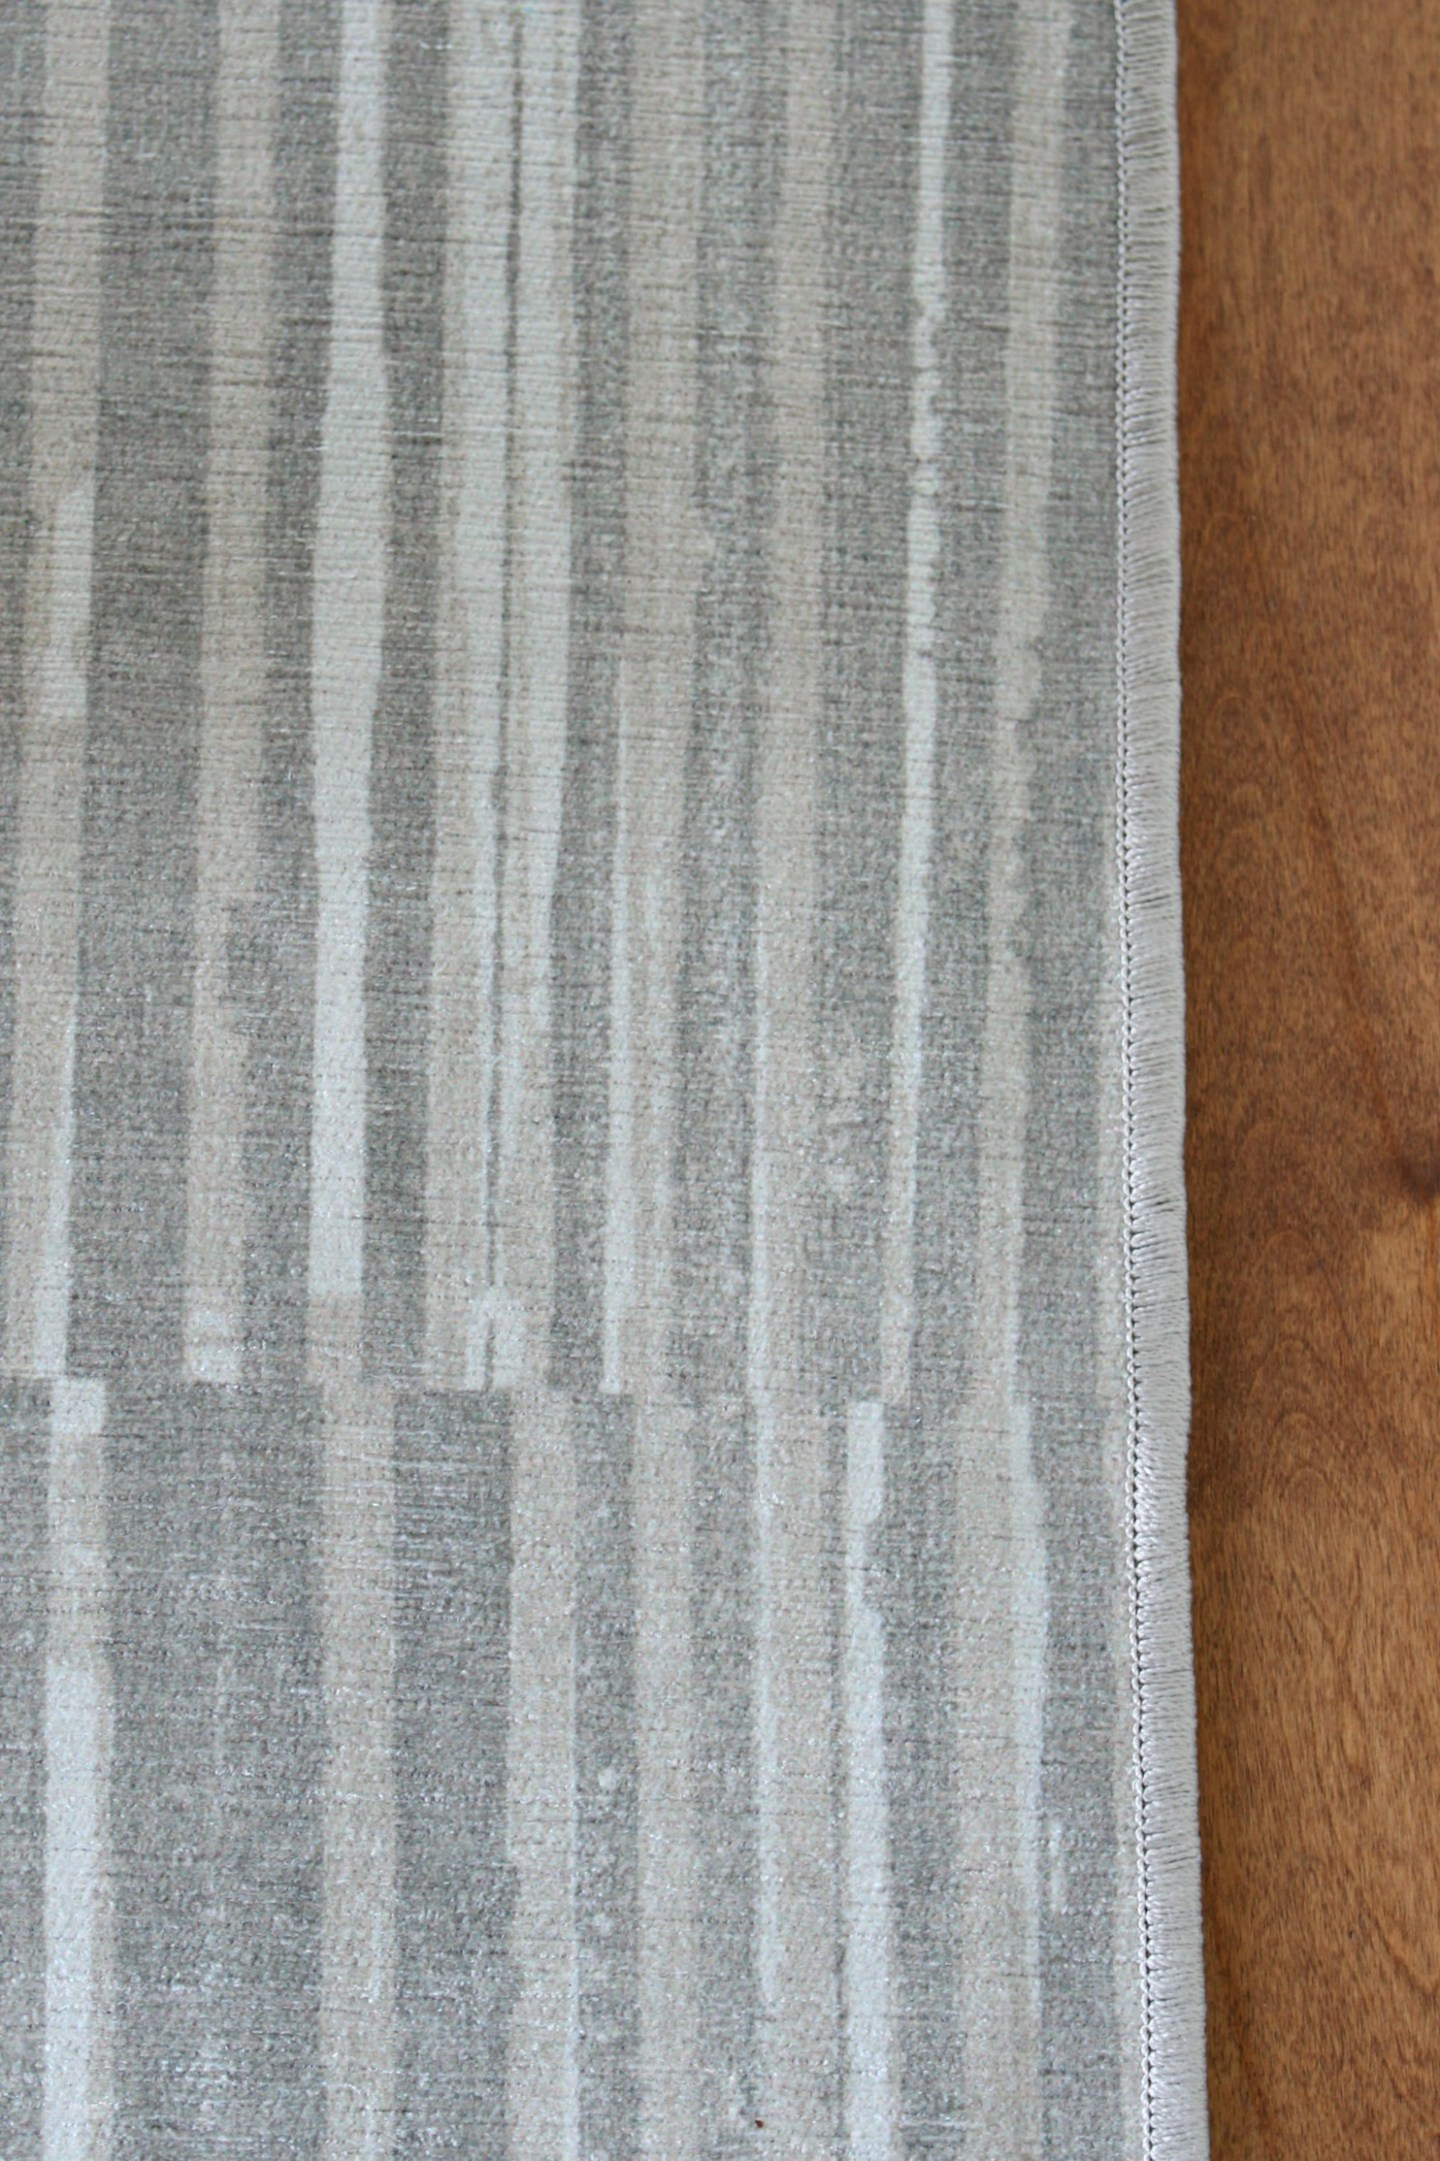 Ruggable Rug Review - A Washable Rug!